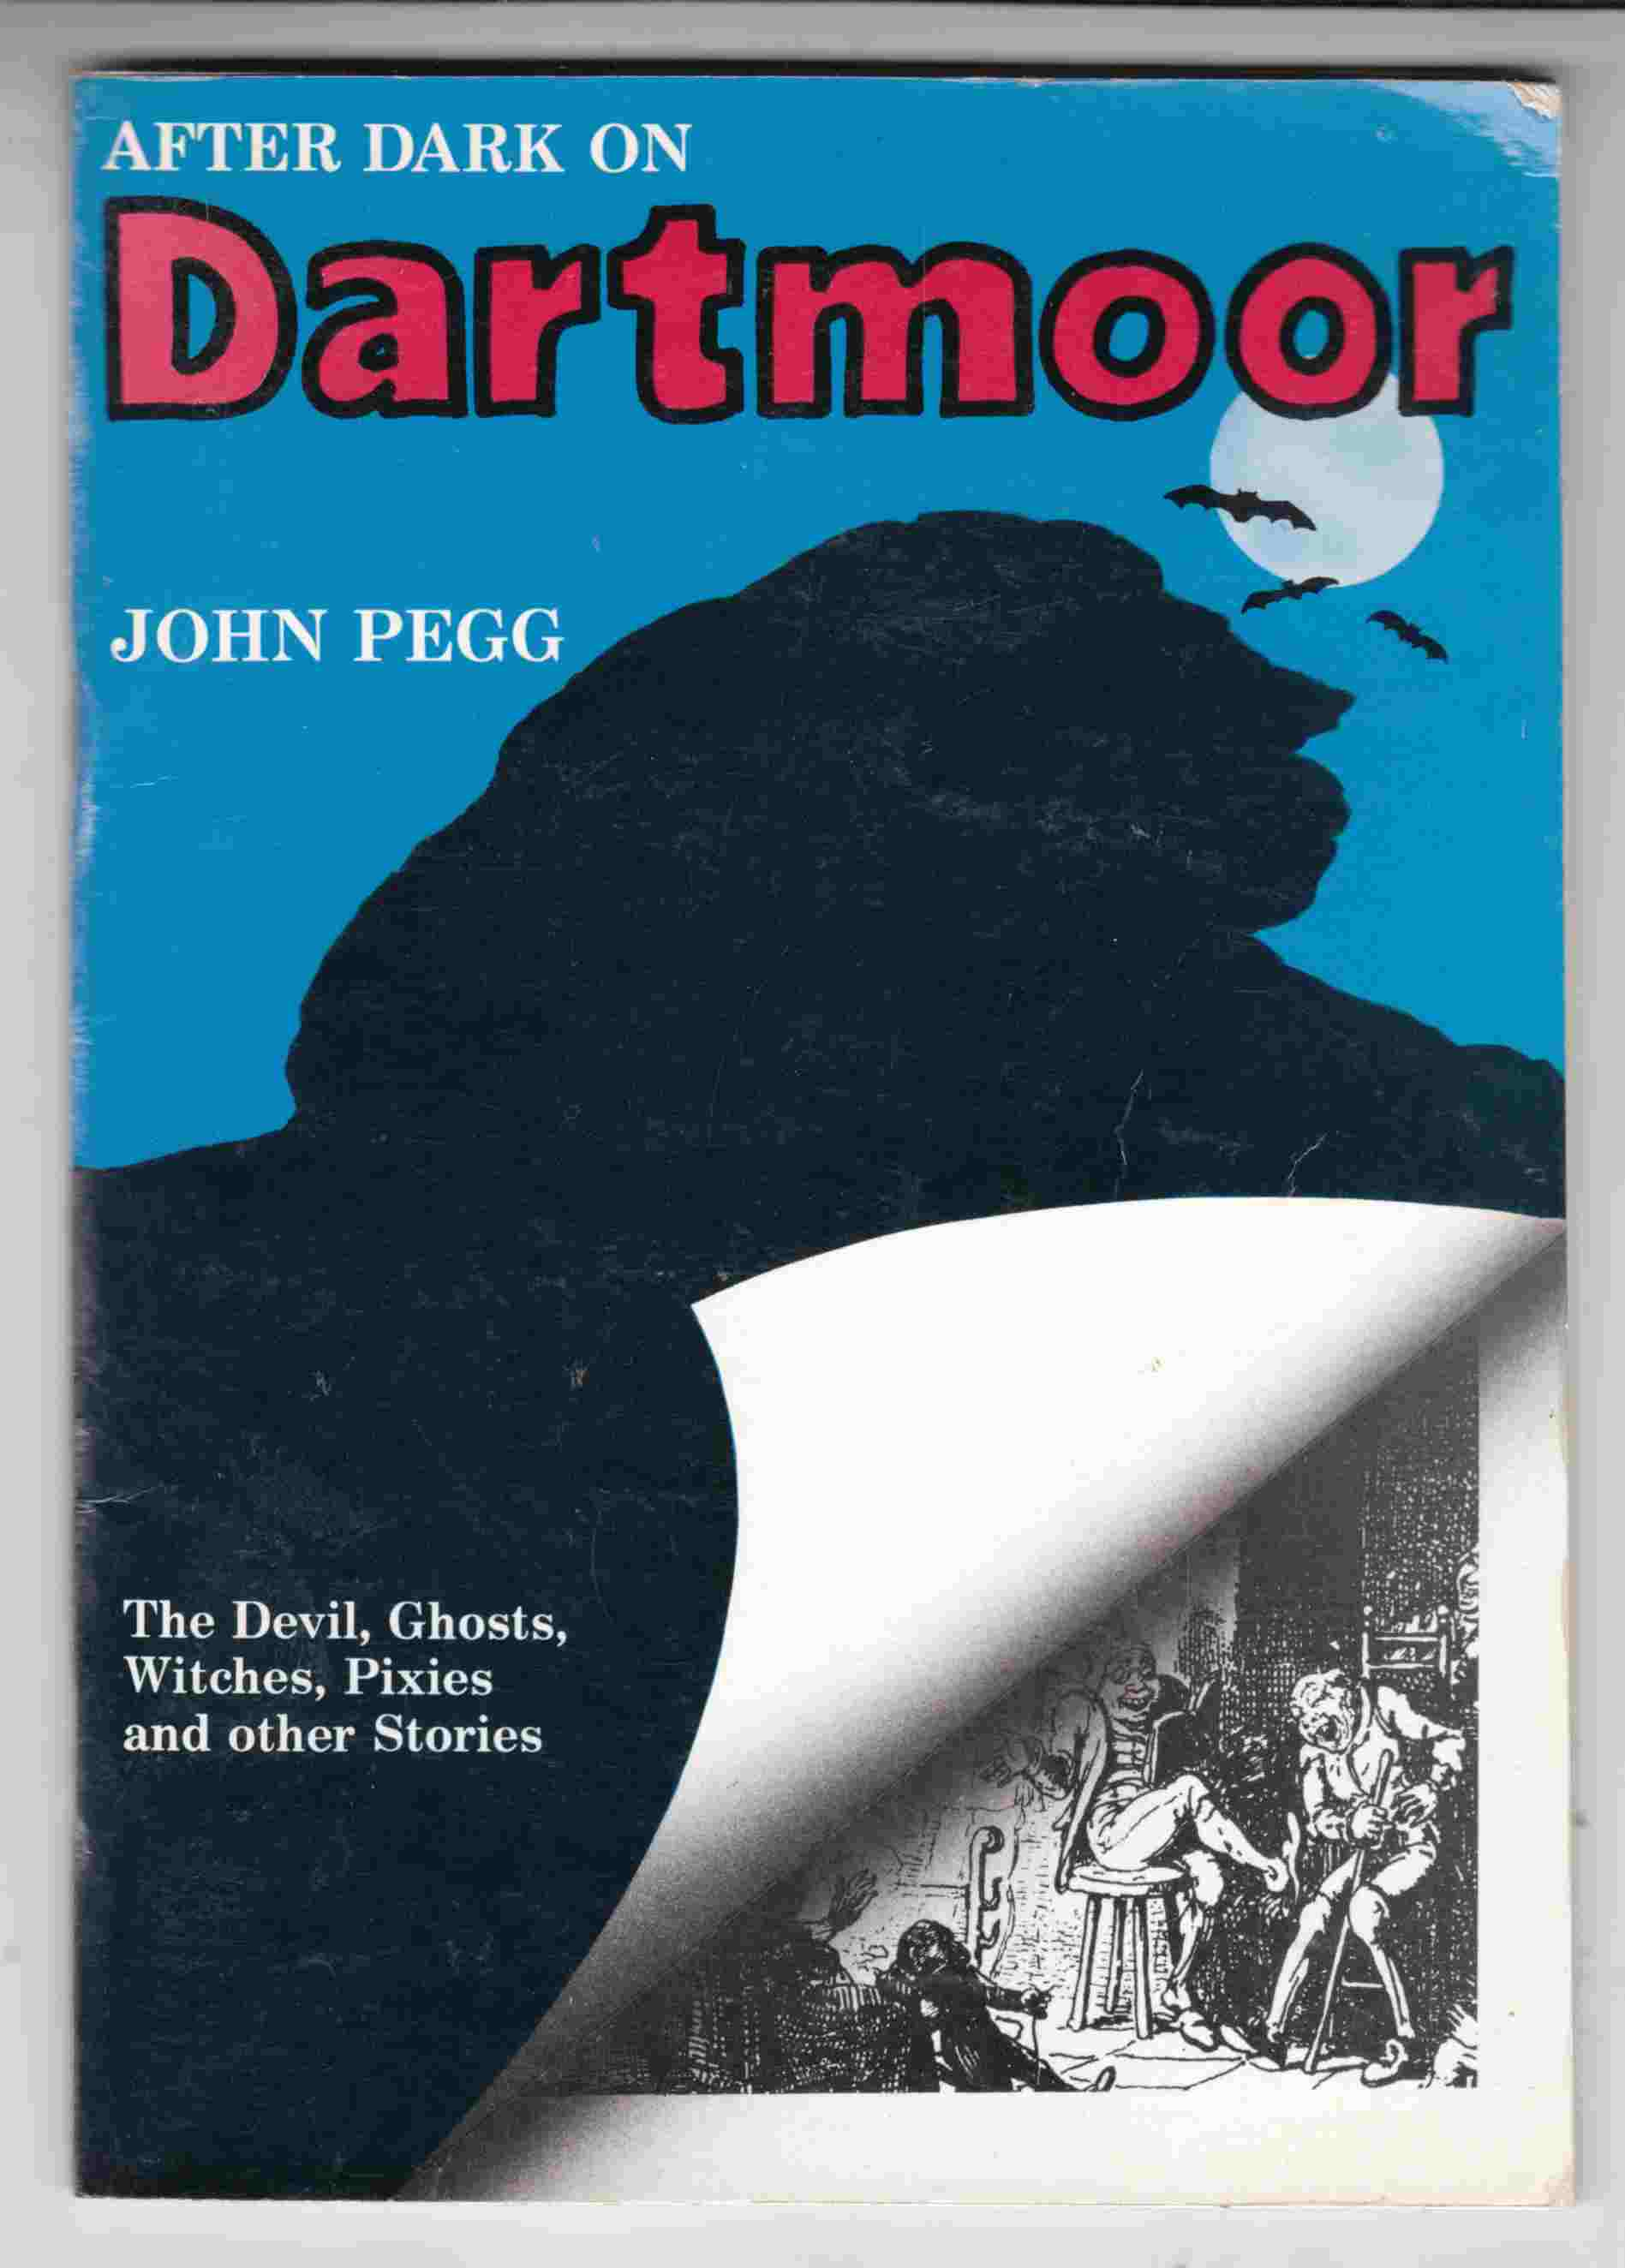 Image for After Dark on Dartmoor Collected Stories, Legends and Tales